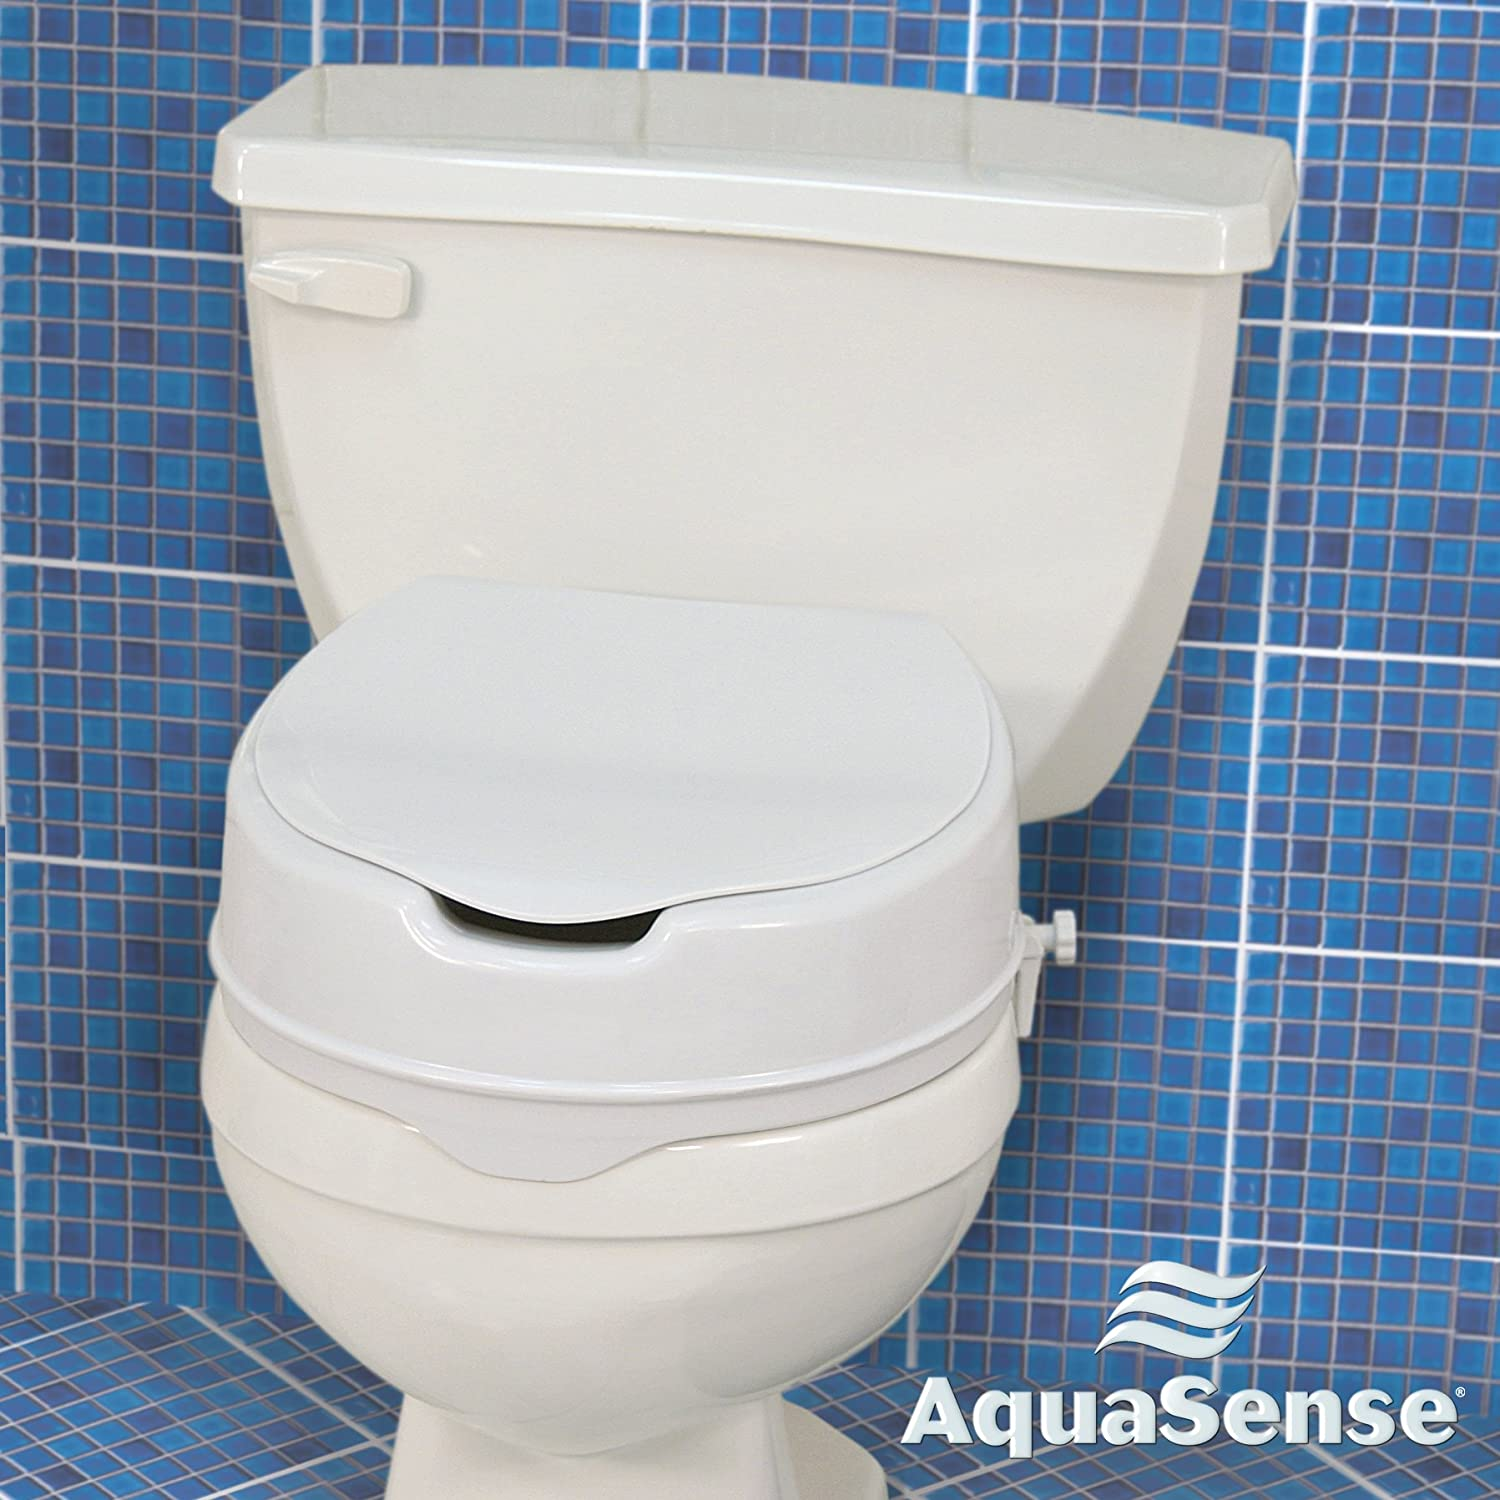 Amazon.com: AquaSense Raised Toilet Seat with Lid, White, 2 Inches ...